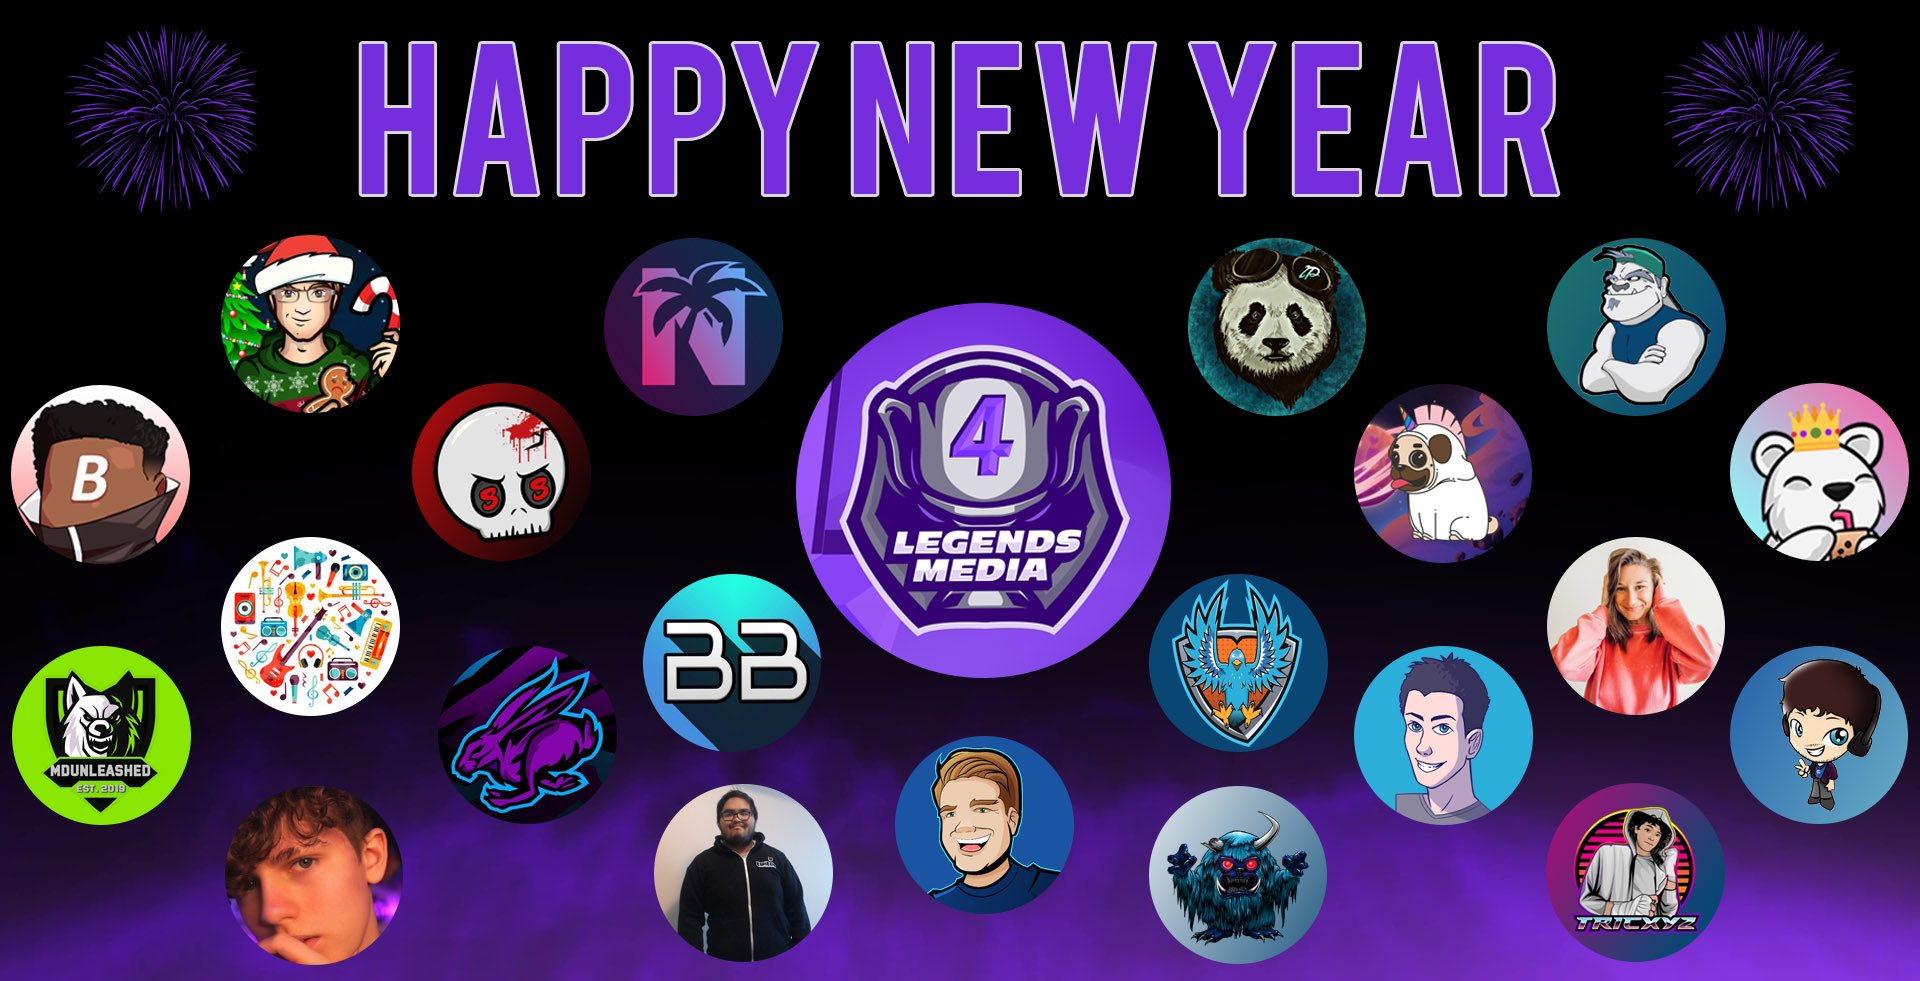 Happy New Year from 4LM!